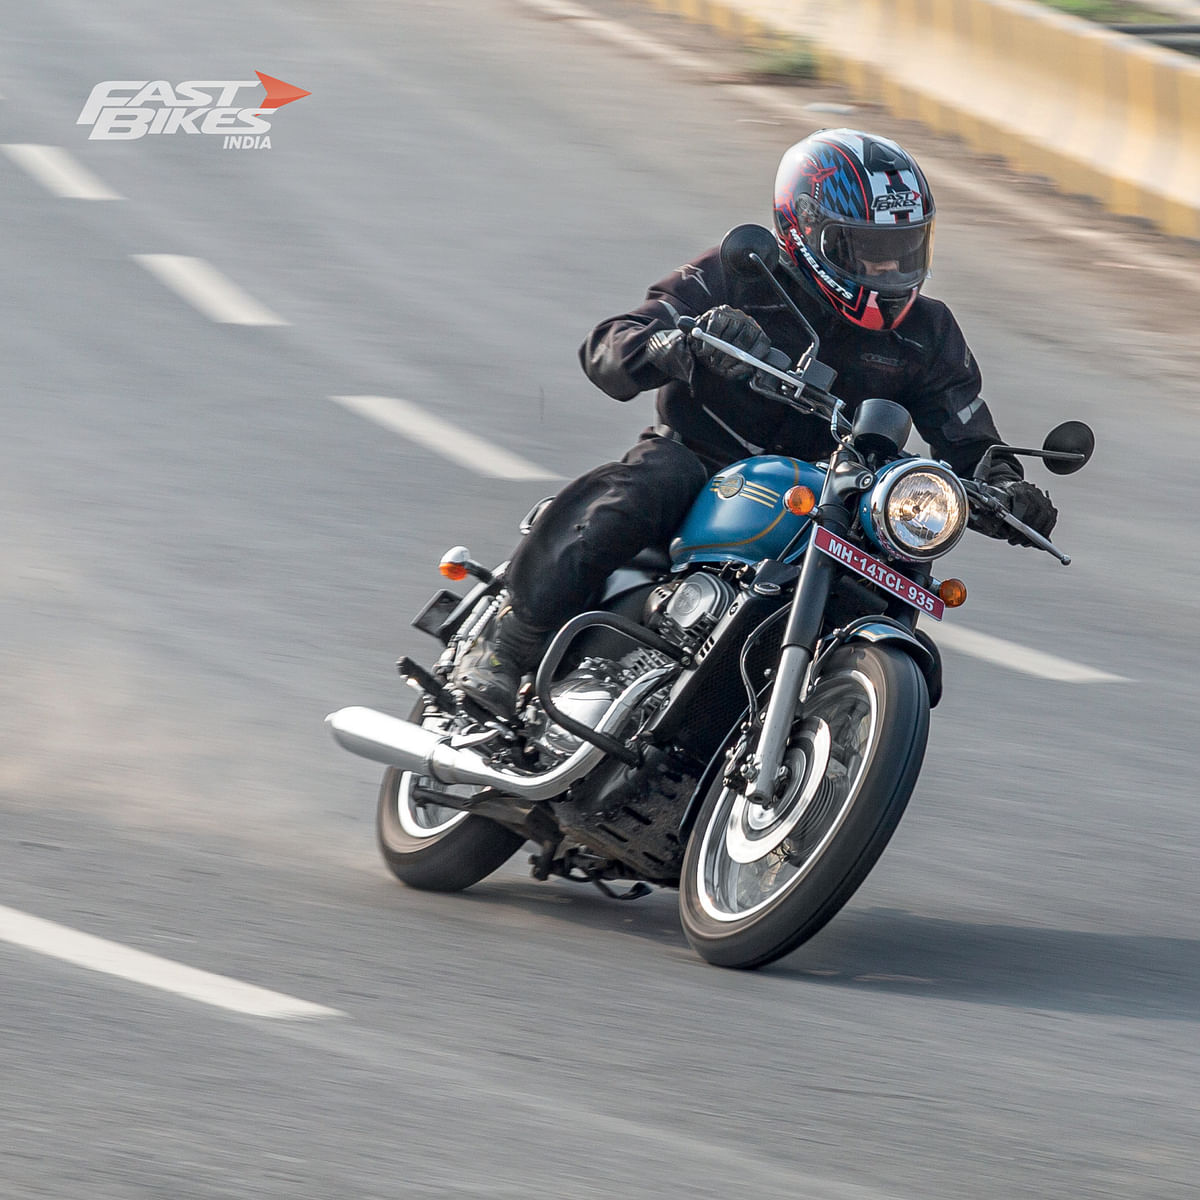 Jawa Forty-Two v Suzuki Gixxer SF 250: Which one should you take your significant other on?